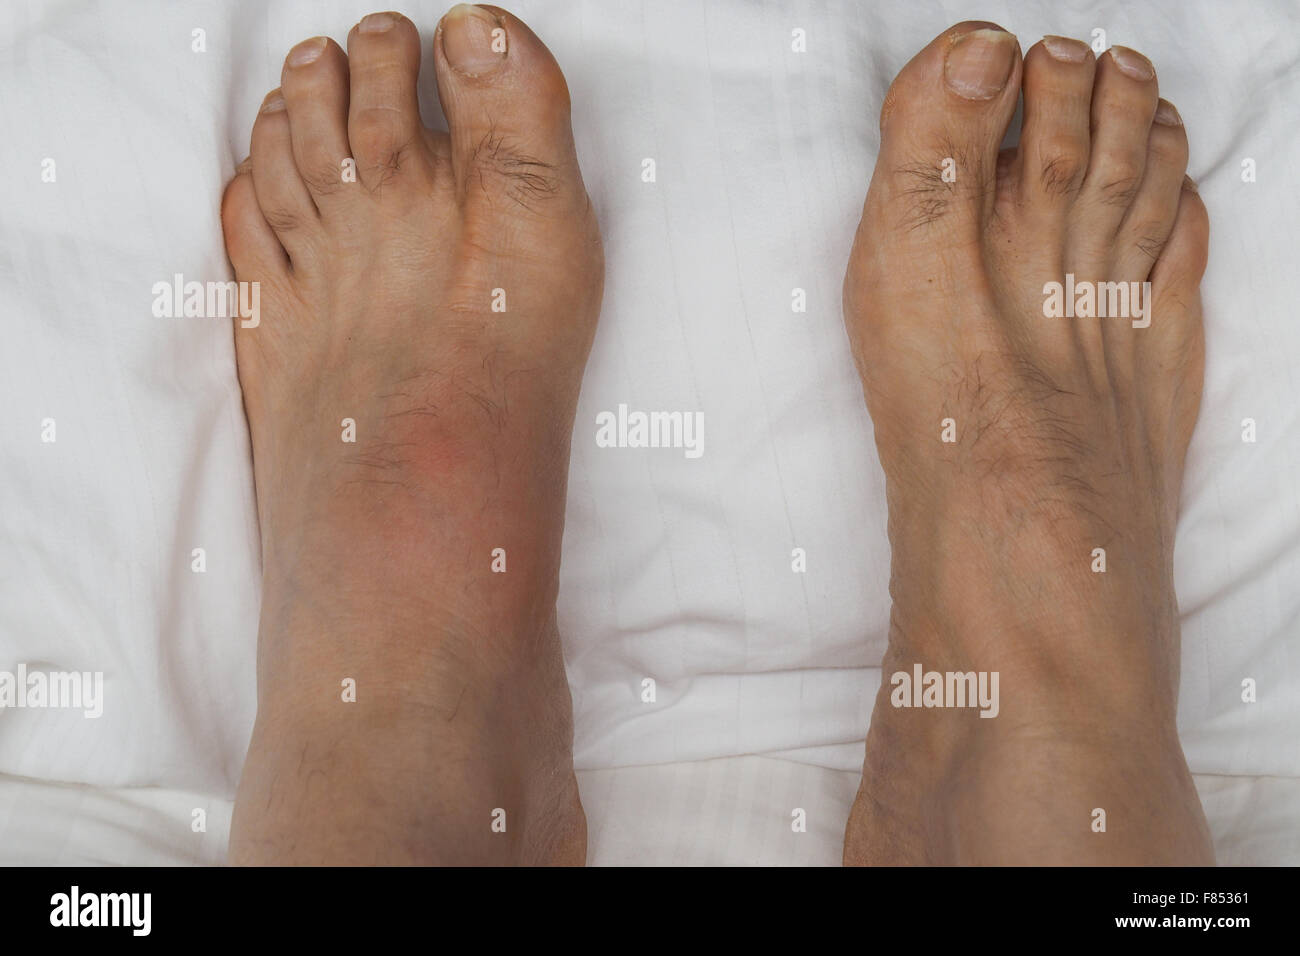 A pair of feet with the left foot inflamed and swollen with gout. - Stock Image